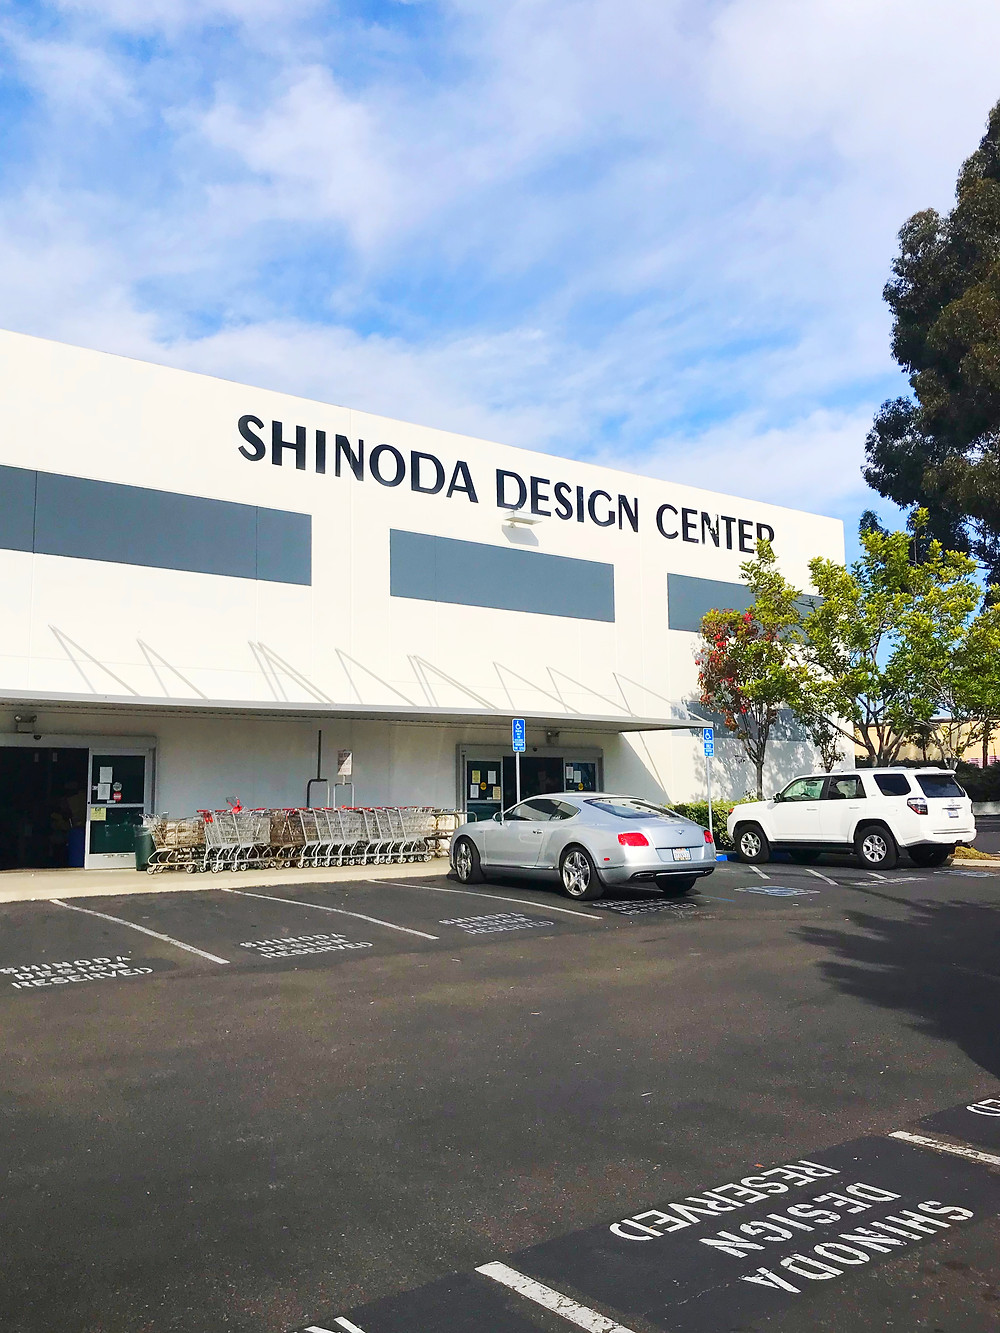 SHINODA DESIGN CENTER